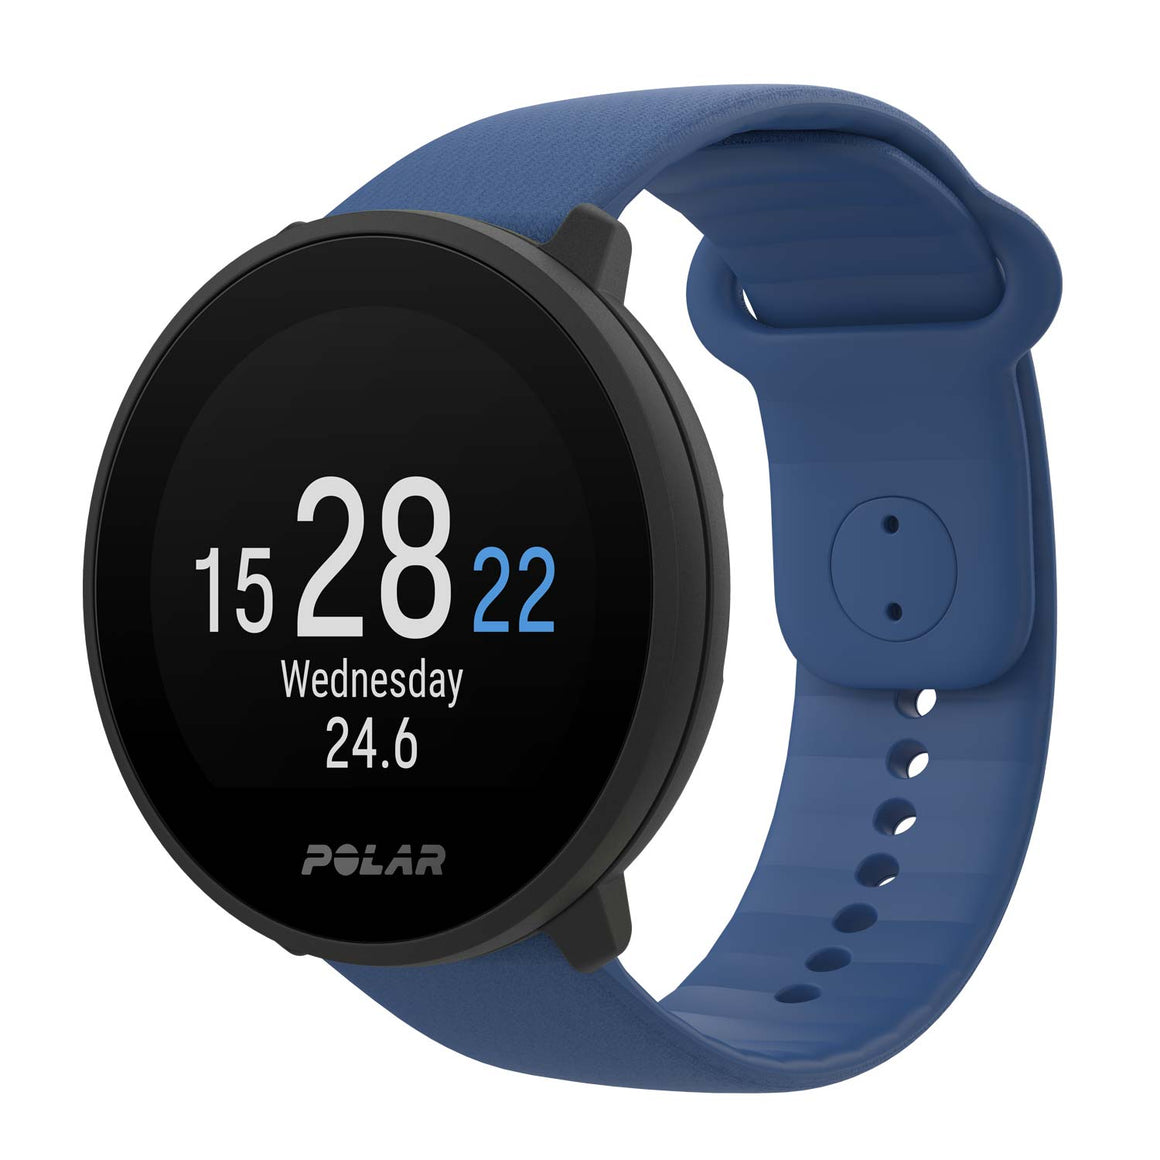 POLAR UNITE FITNESS WATCH WITH WRIST-BASED HEART RATE AND SLEEP TRACKING | BLUE